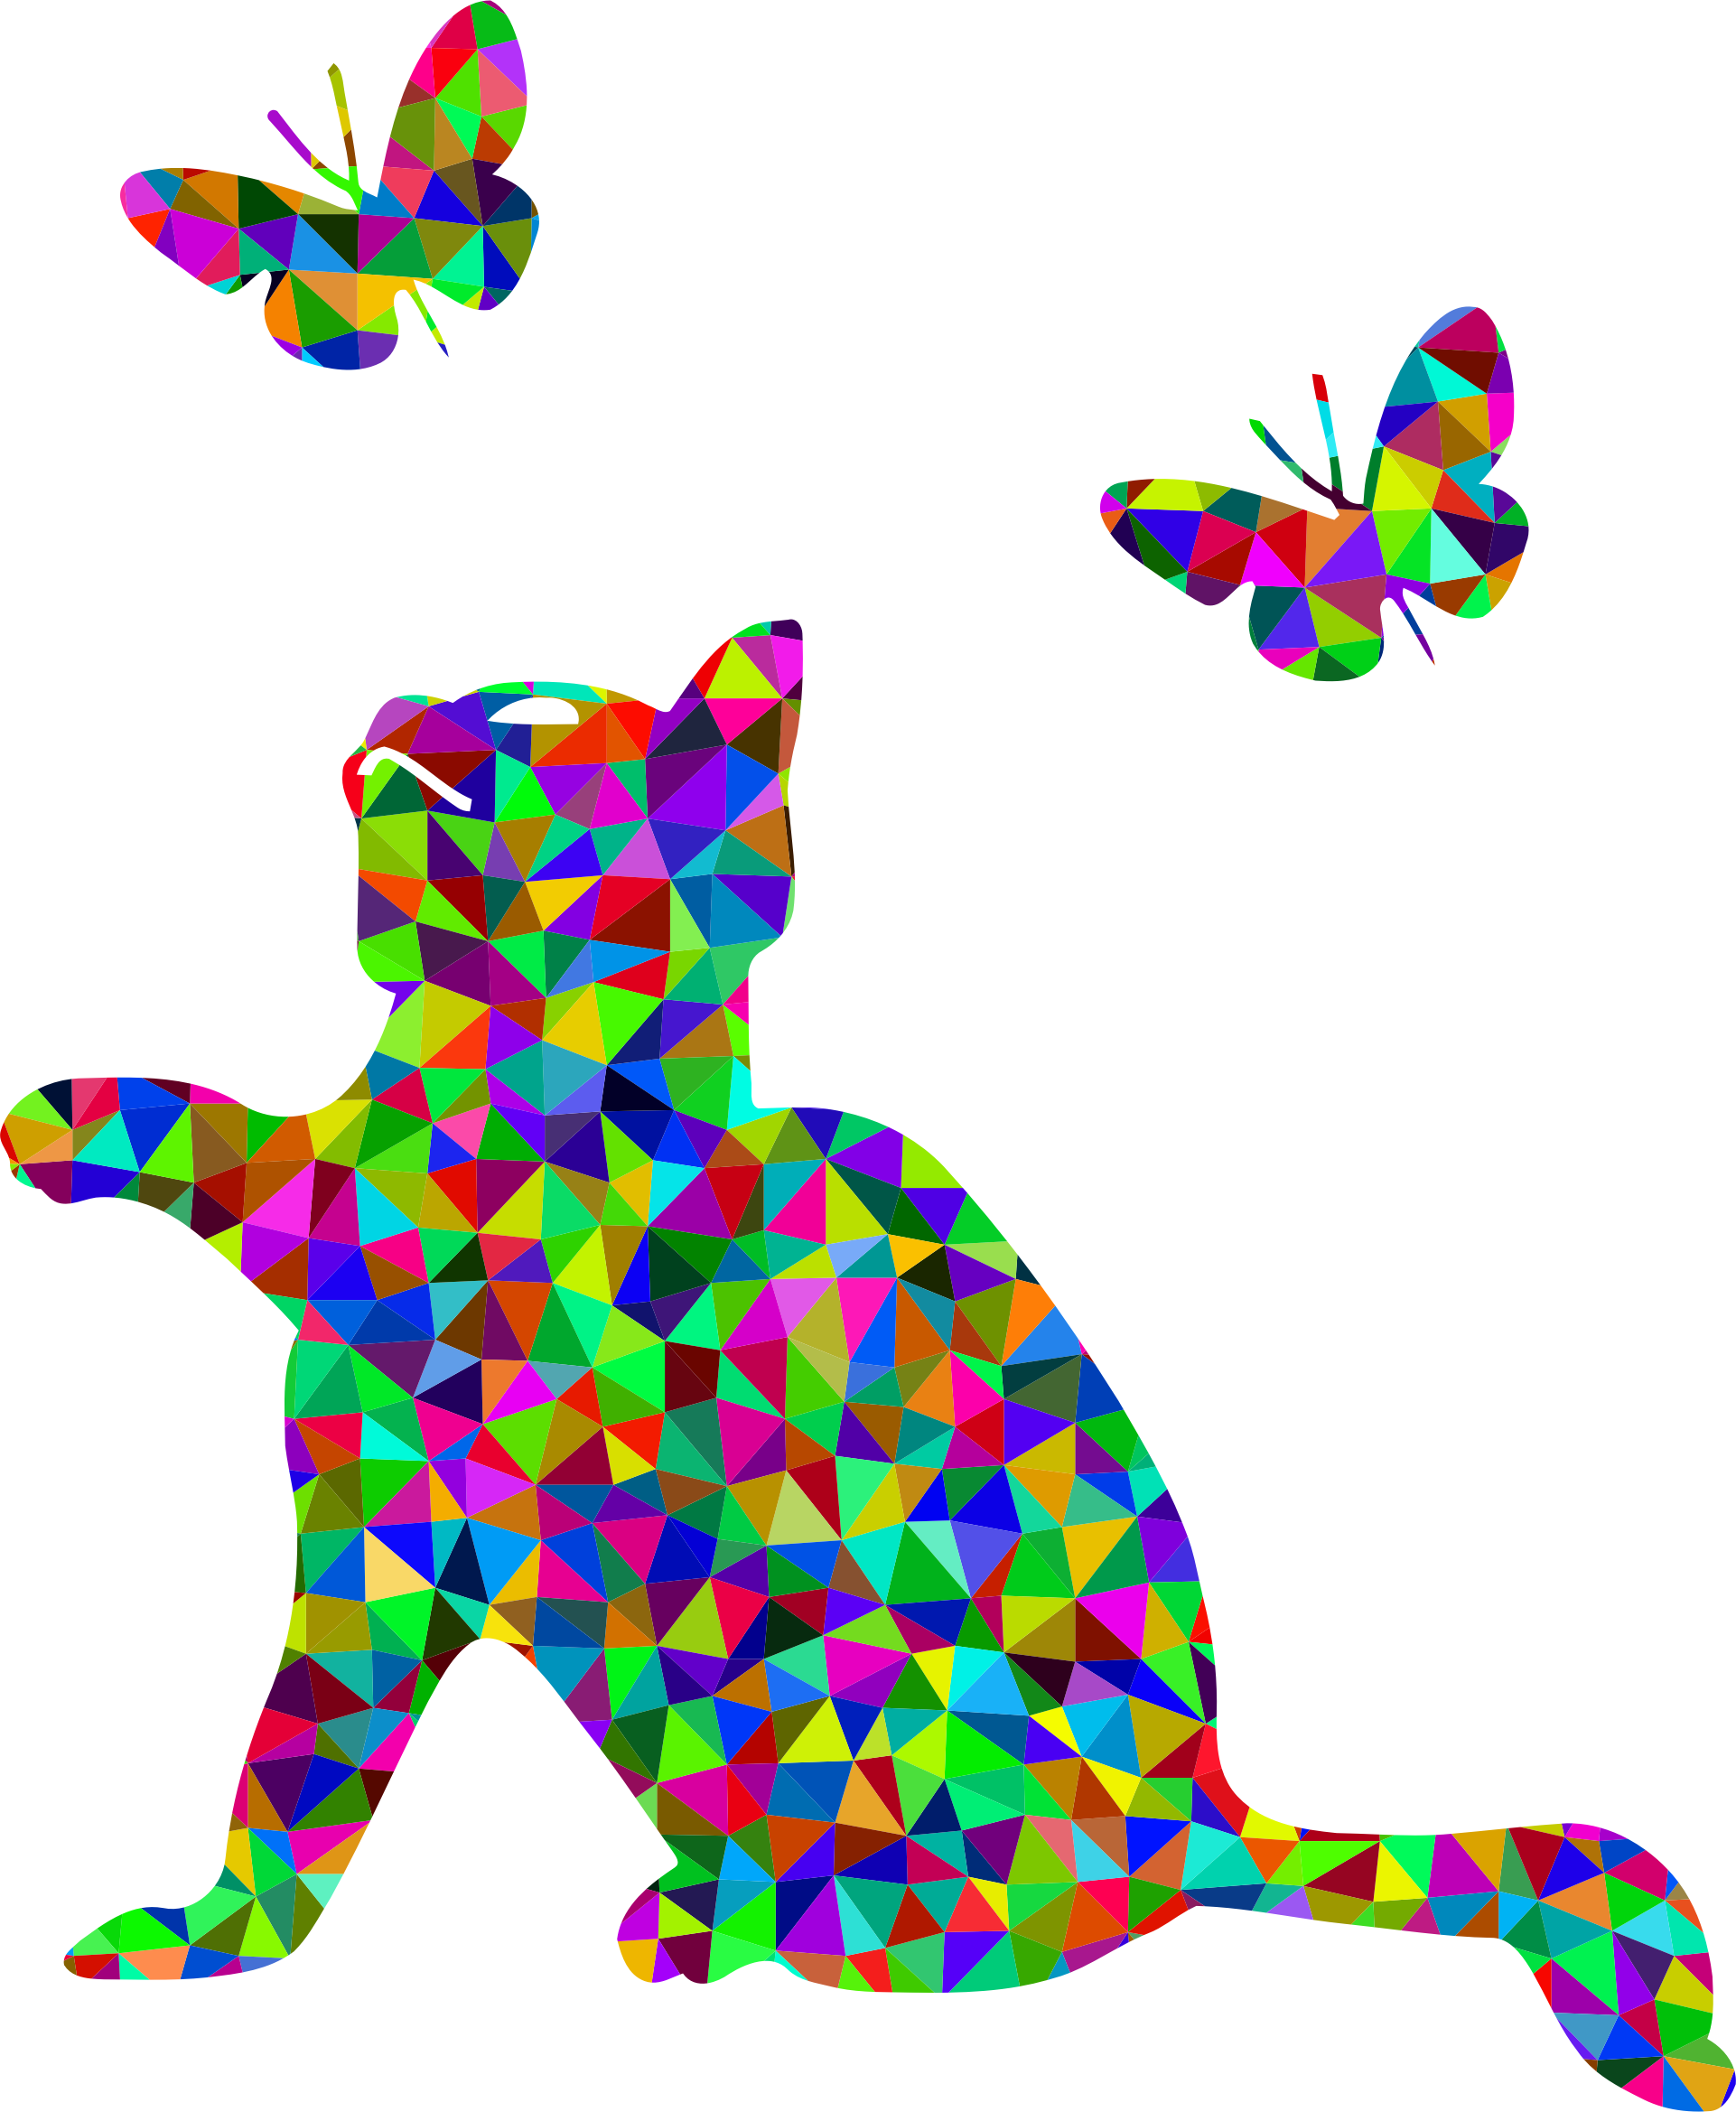 Prismatic Low Poly Kitten Playing With Butterflies by GDJ